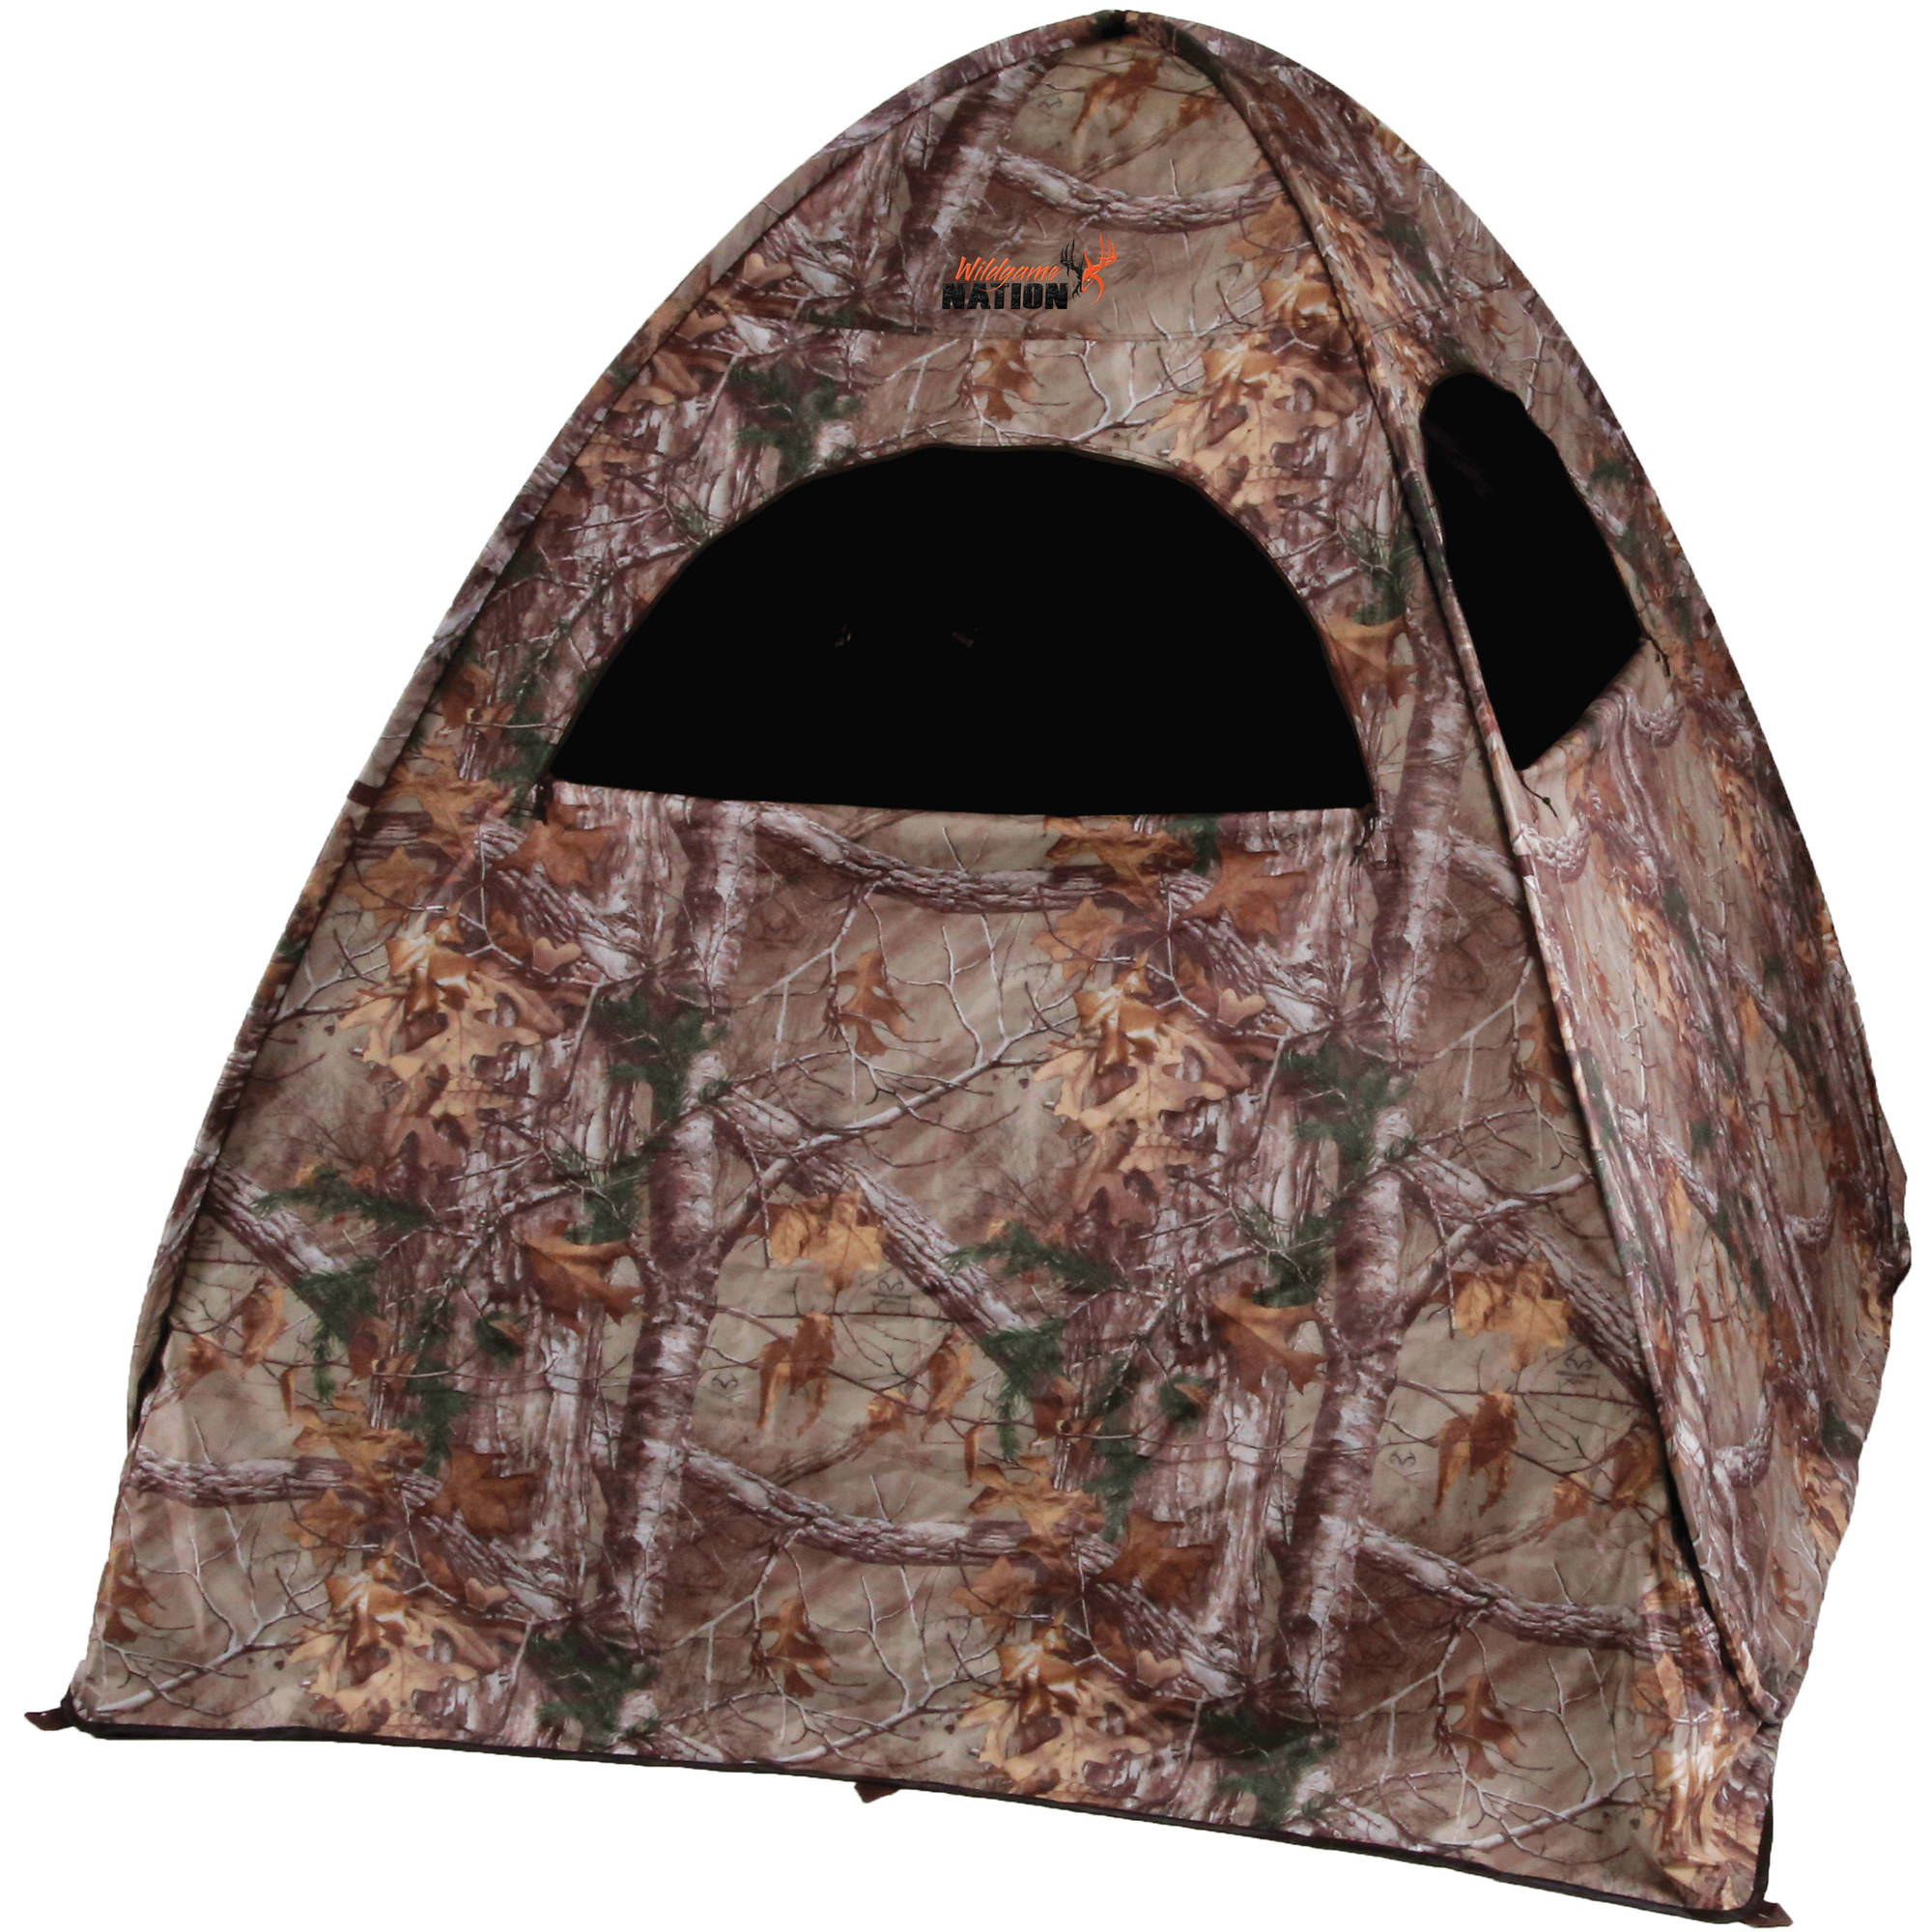 Grassroots Blind, Wildgame Nation Camouflage Pattern